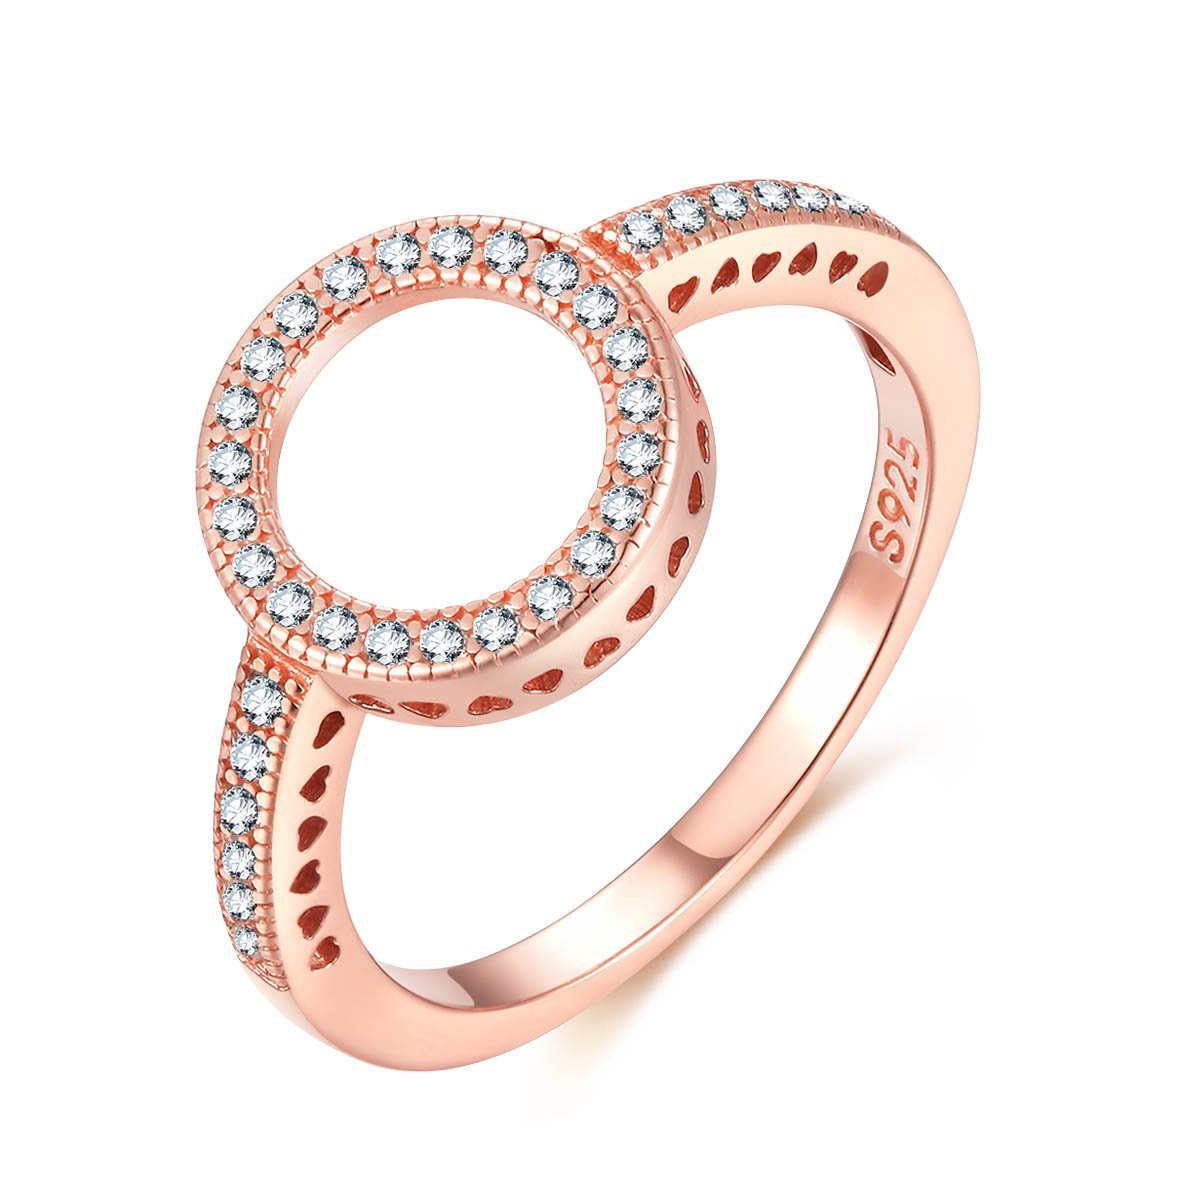 Presentski Rose Gold Engagement Halo Ring Sterling Silver with CZ for Friendship Wedding Day Gift